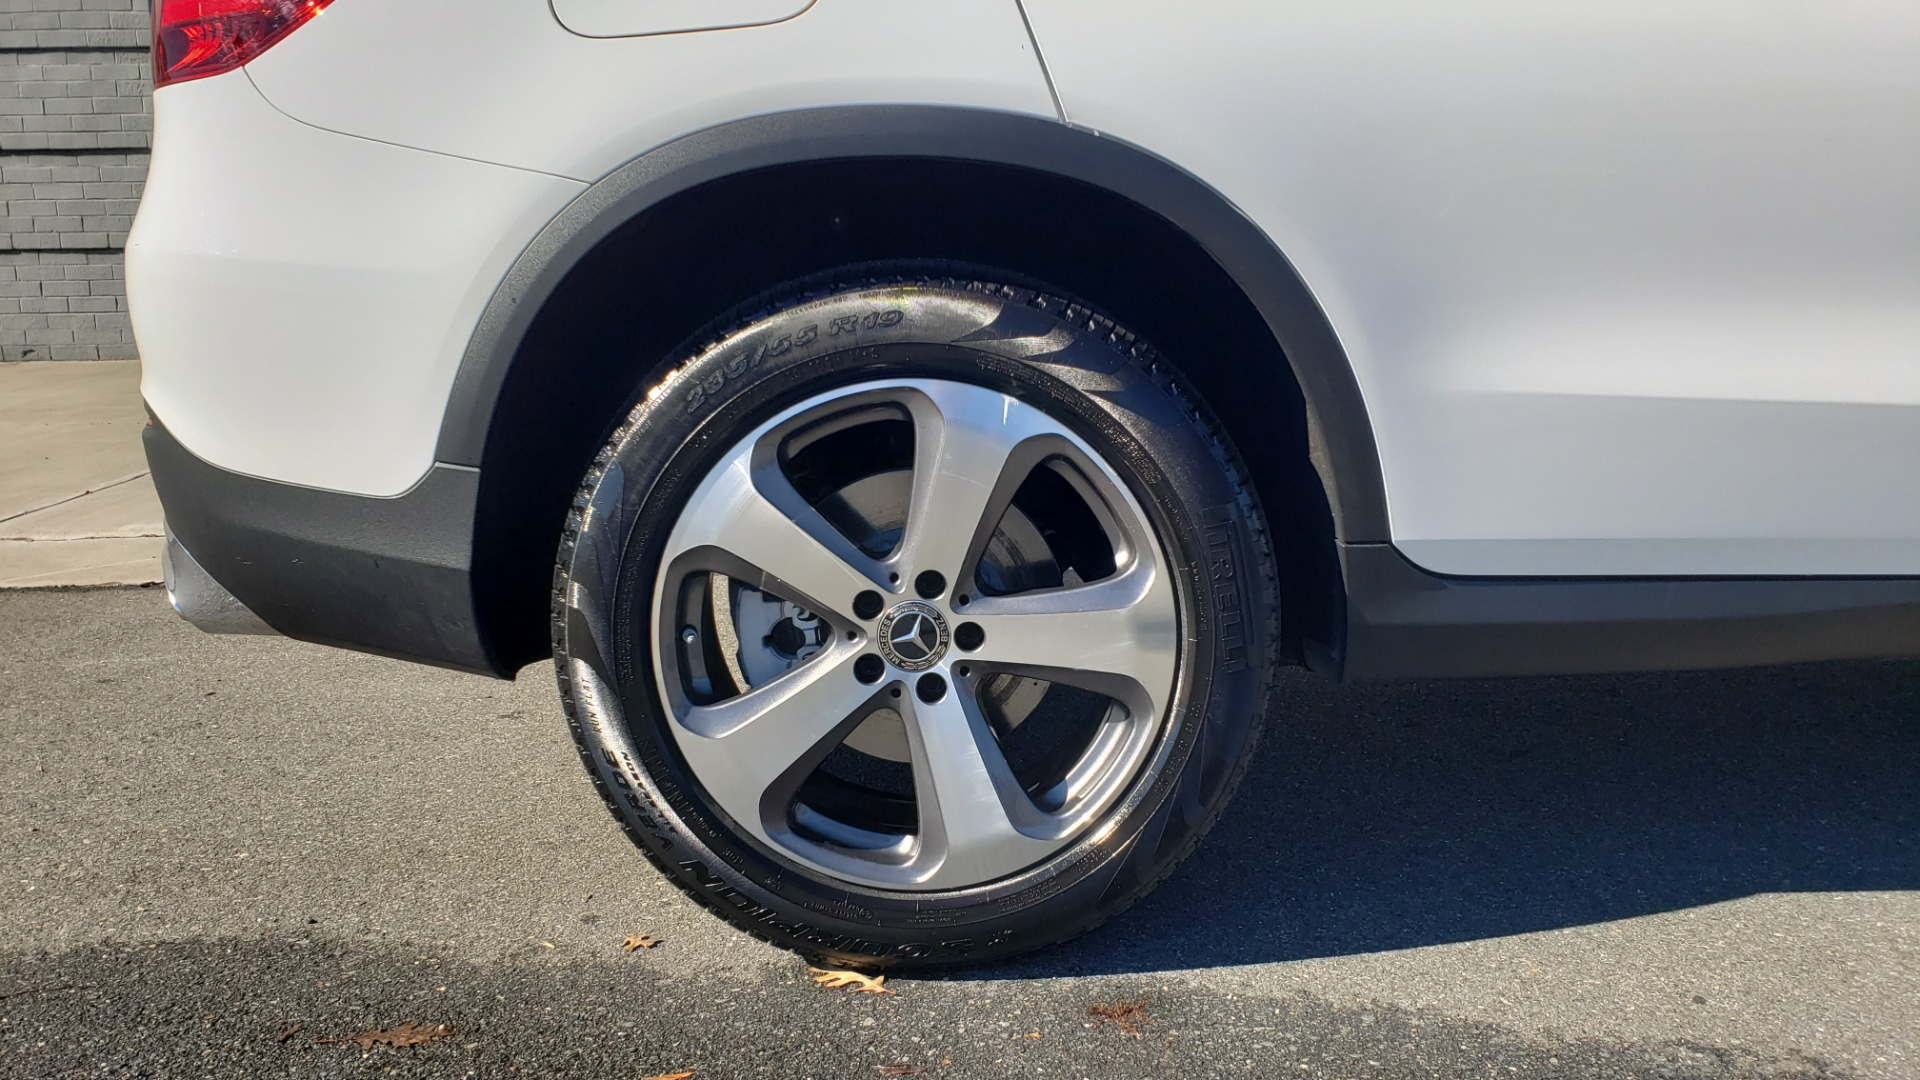 Used 2018 Mercedes-Benz GLC 300 4MATIC / PREM PKG / NAV / SUNROOF / REARVIEW for sale $36,995 at Formula Imports in Charlotte NC 28227 83